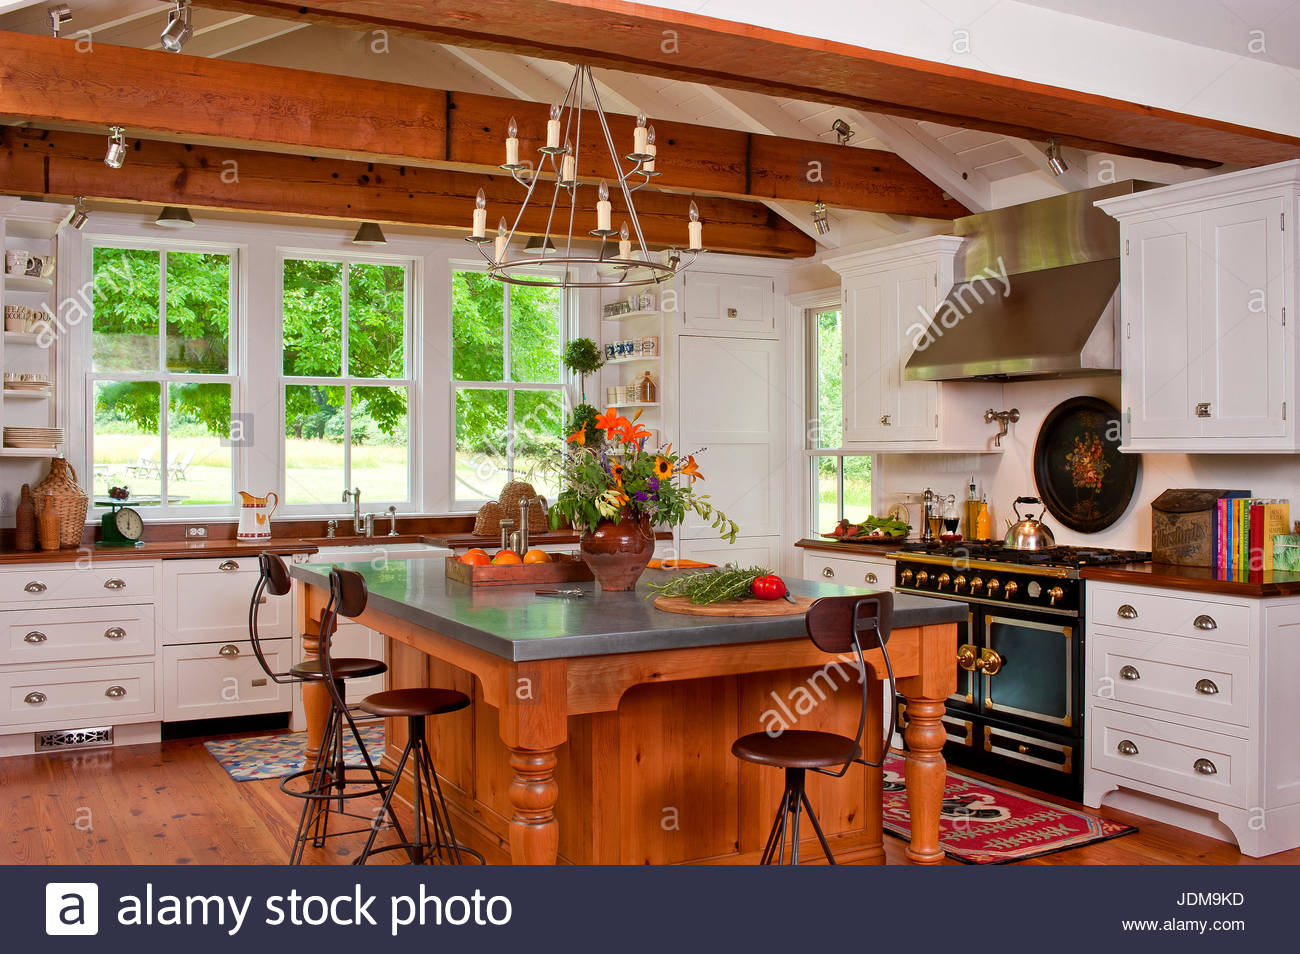 gas range stockfotos gas range bilder alamy. Black Bedroom Furniture Sets. Home Design Ideas